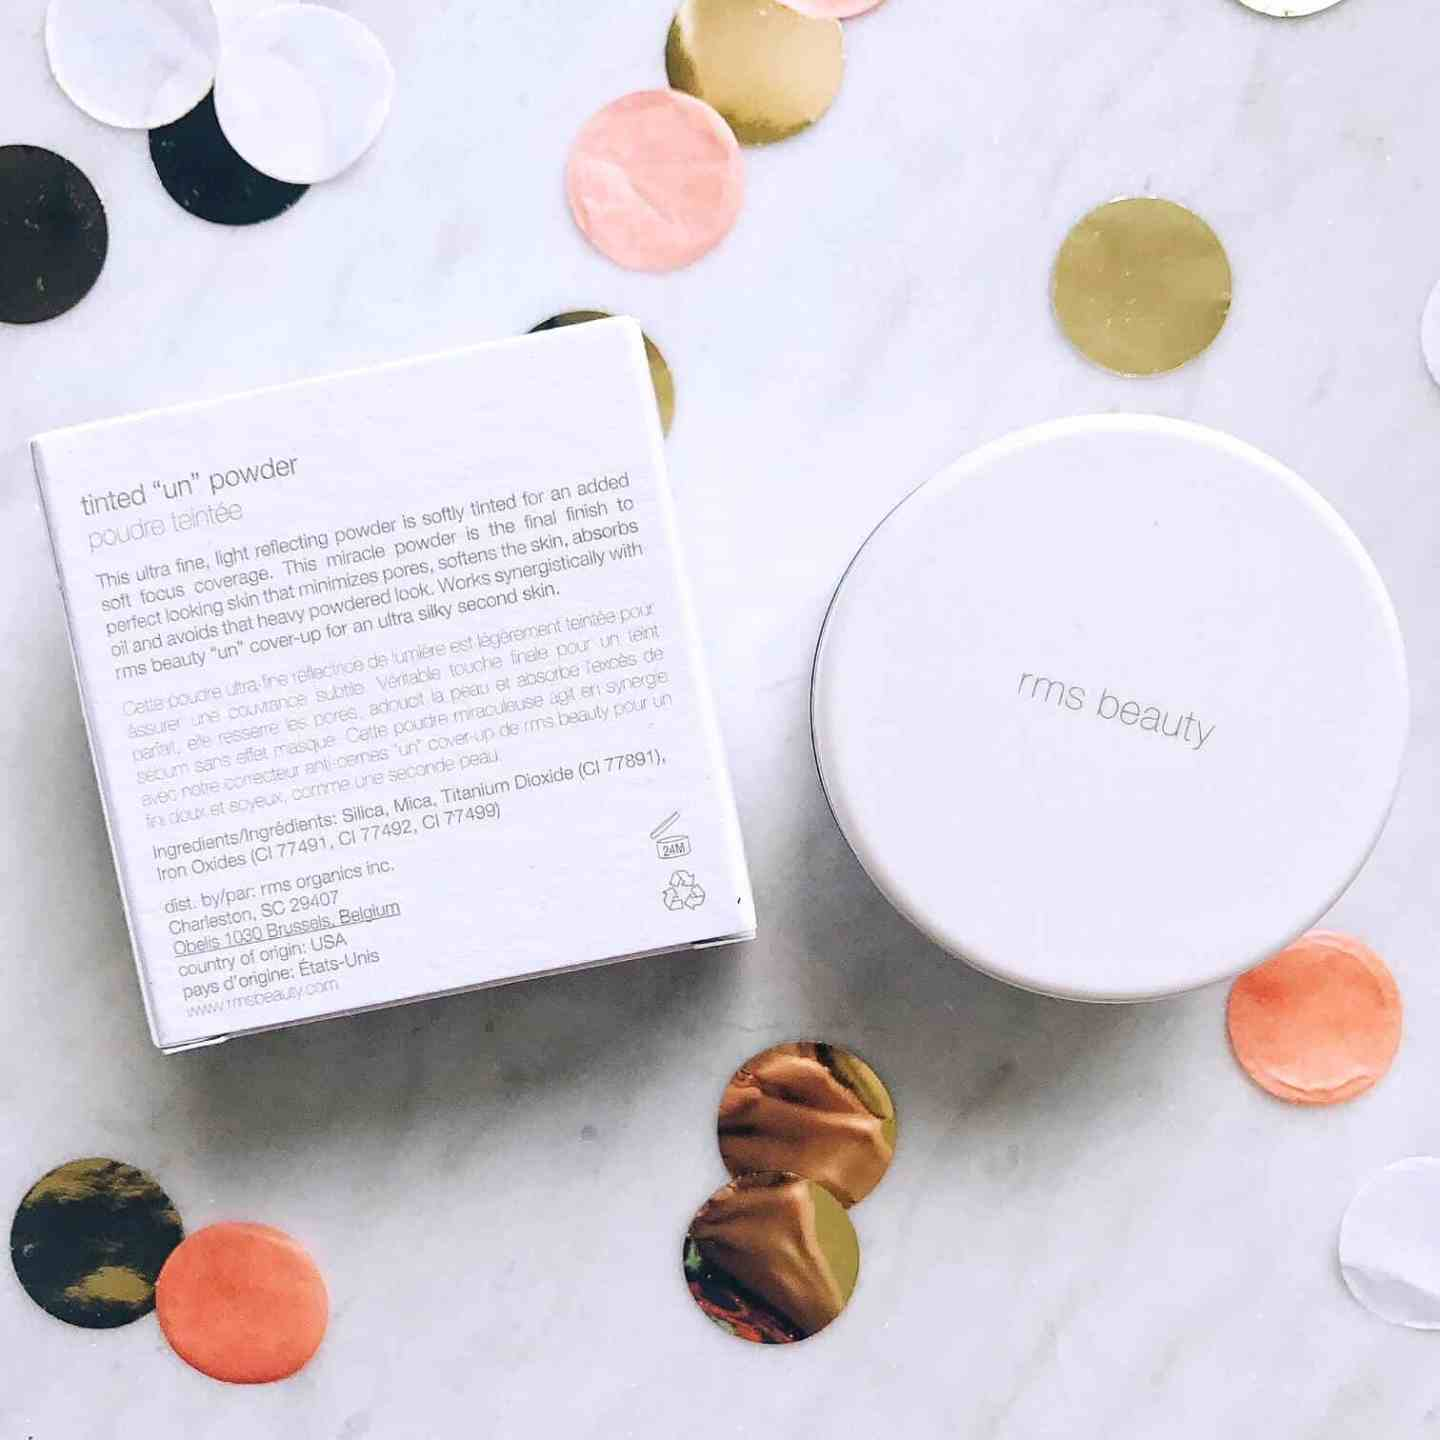 RMS Beauty tinted 'Un' Powder with ingredient list